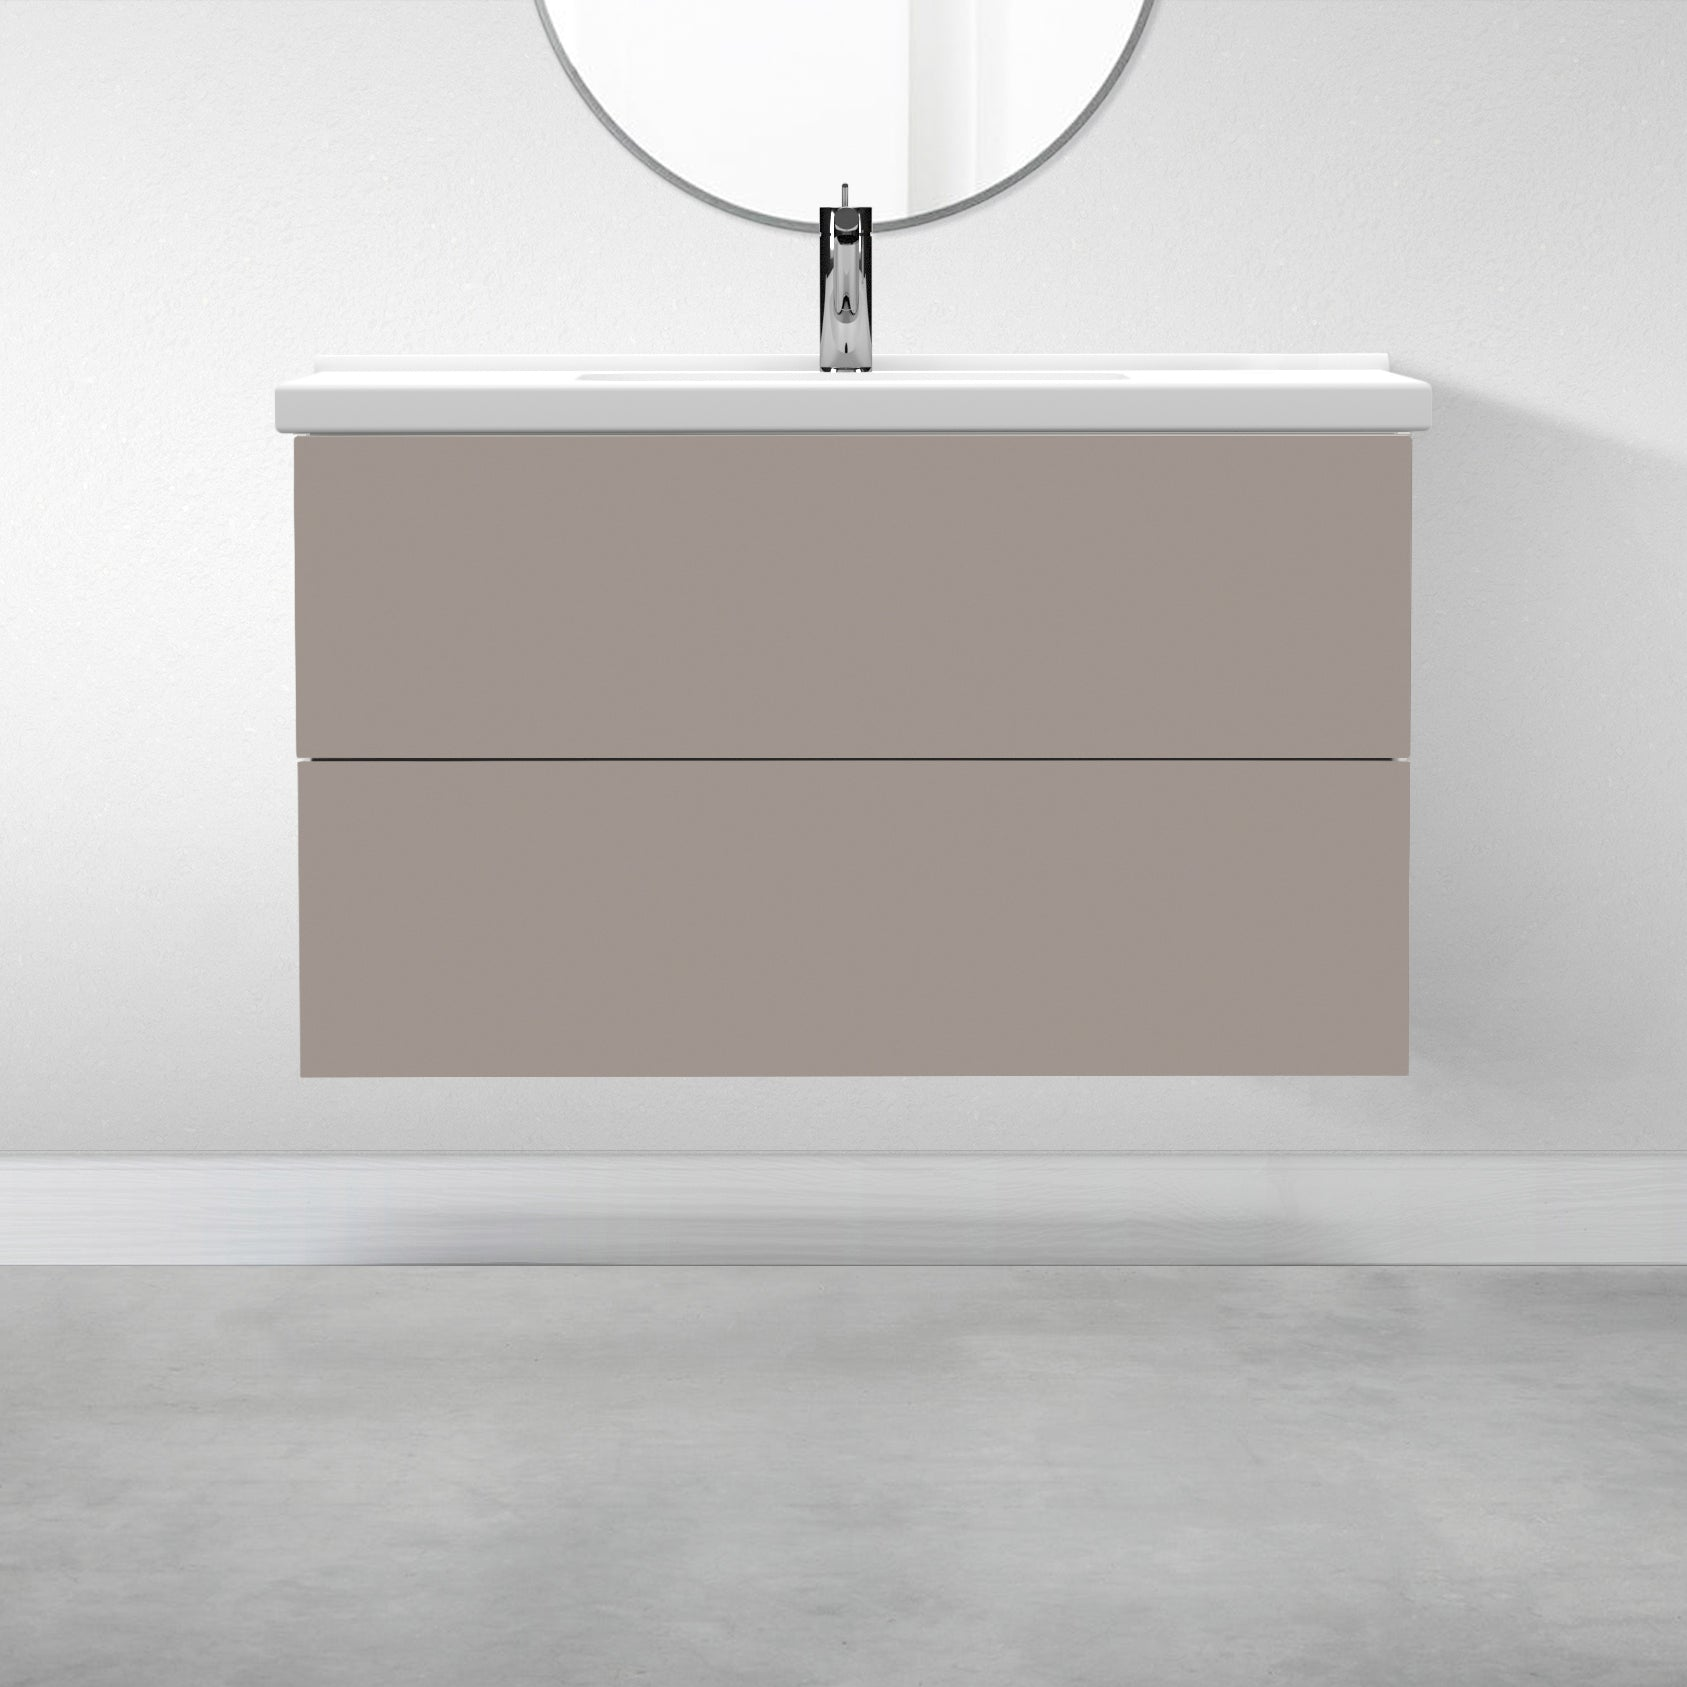 "2 Drawers - 39 3/8"" for Godmorgon Supermatte Slab / Desert Grey"